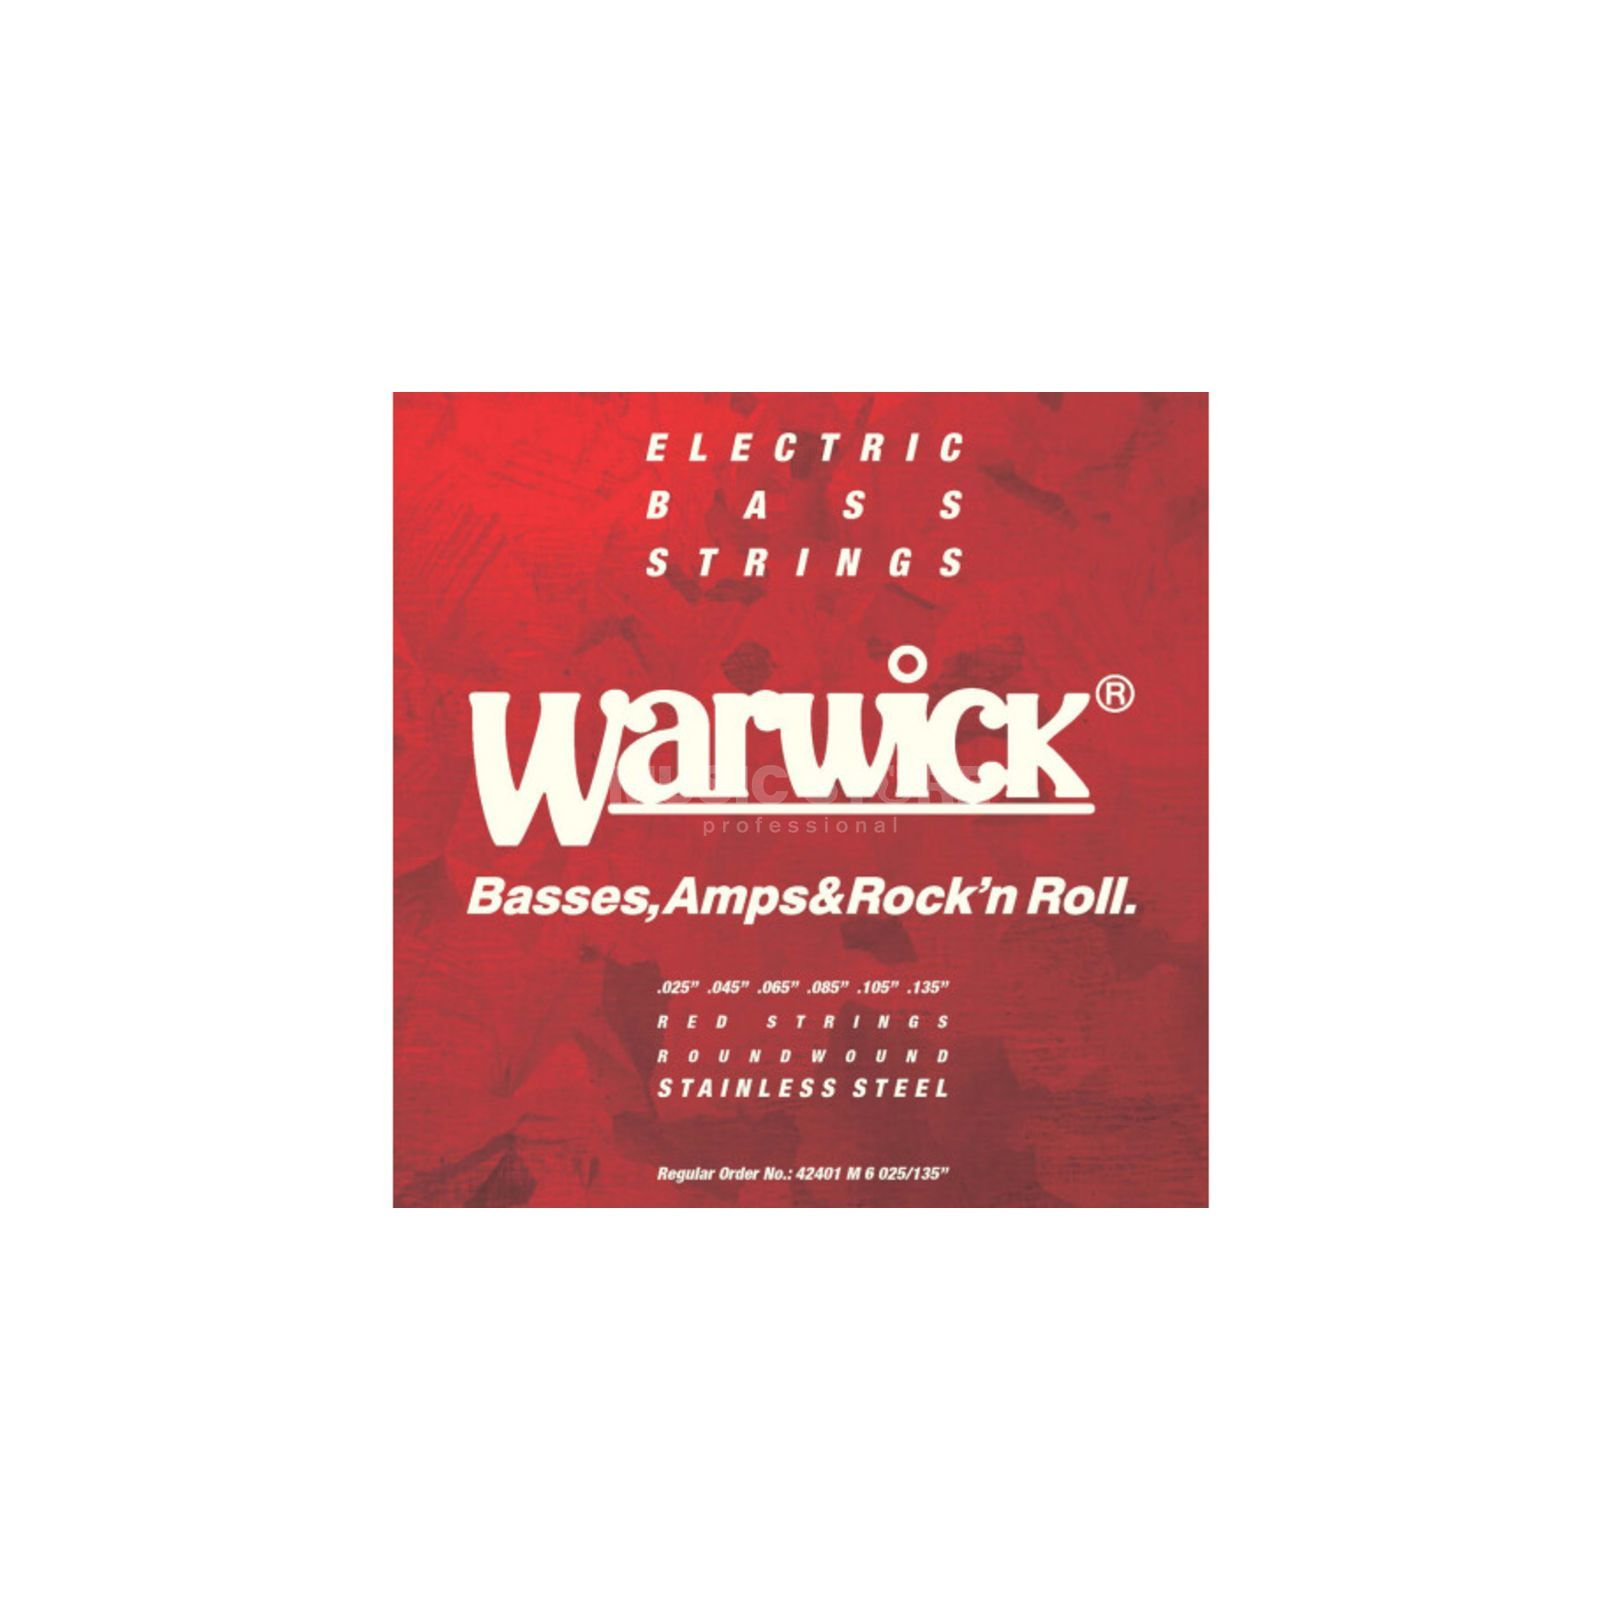 Warwick Bass Strings, 25-135,Red 6 String Set, Stainless Steel Immagine prodotto